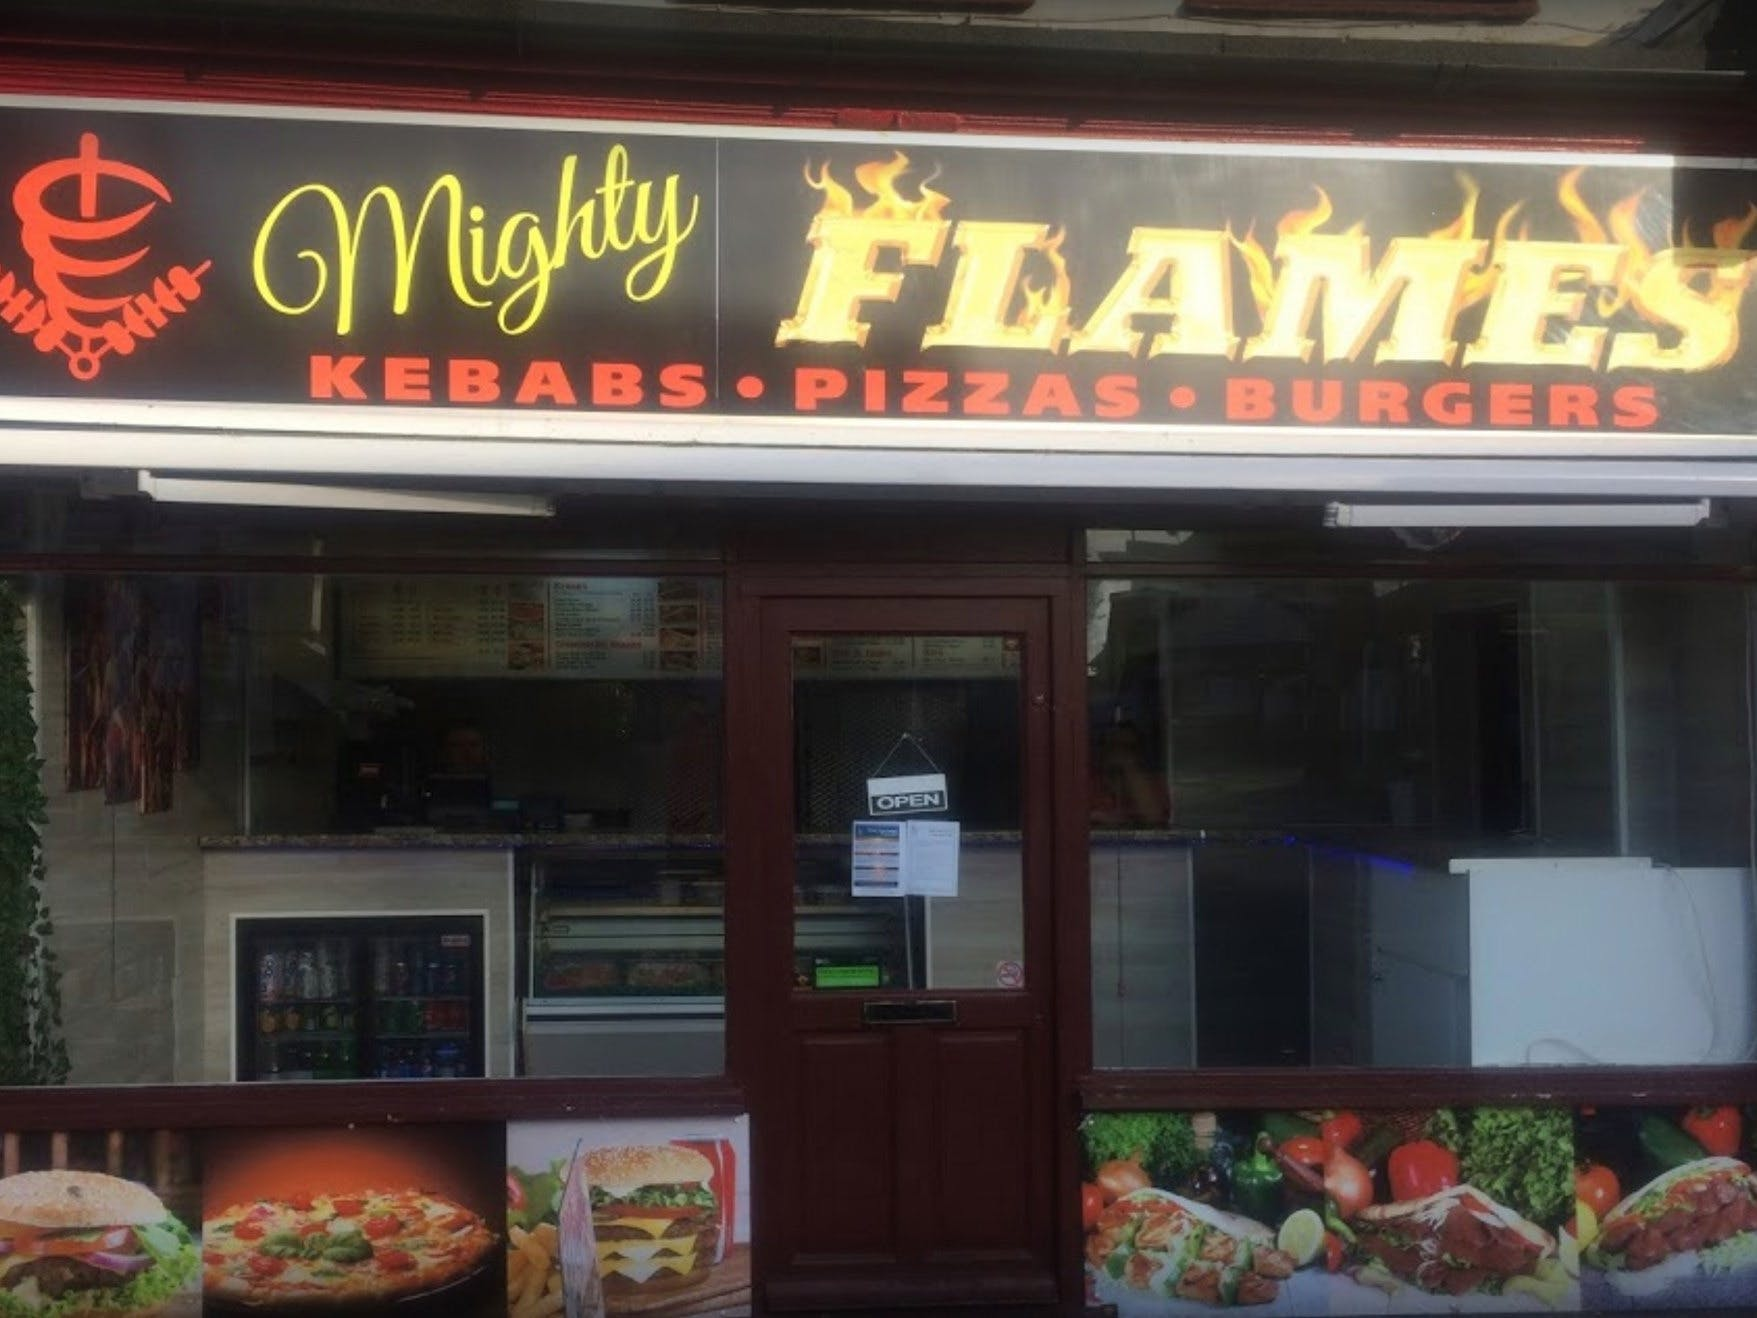 The shop front of Mighty Flames takaway, advertising its kebabs, pizzas and burgers.